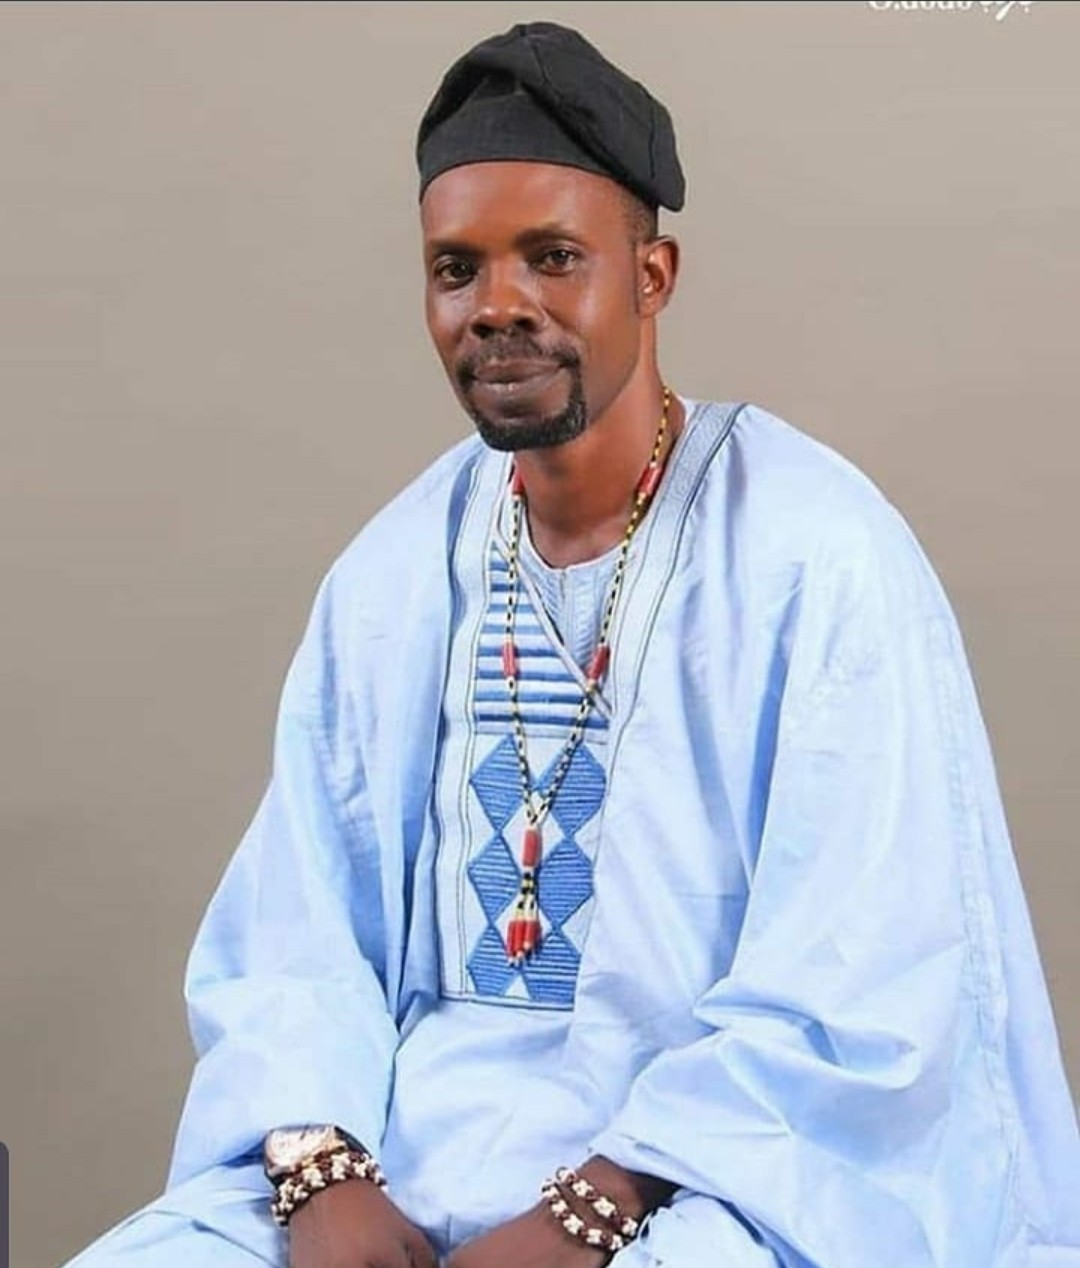 My Father was a competent Ifa Priest but I wanted to be a Soldier or Pilot as a kid-Oluwo Atefinni